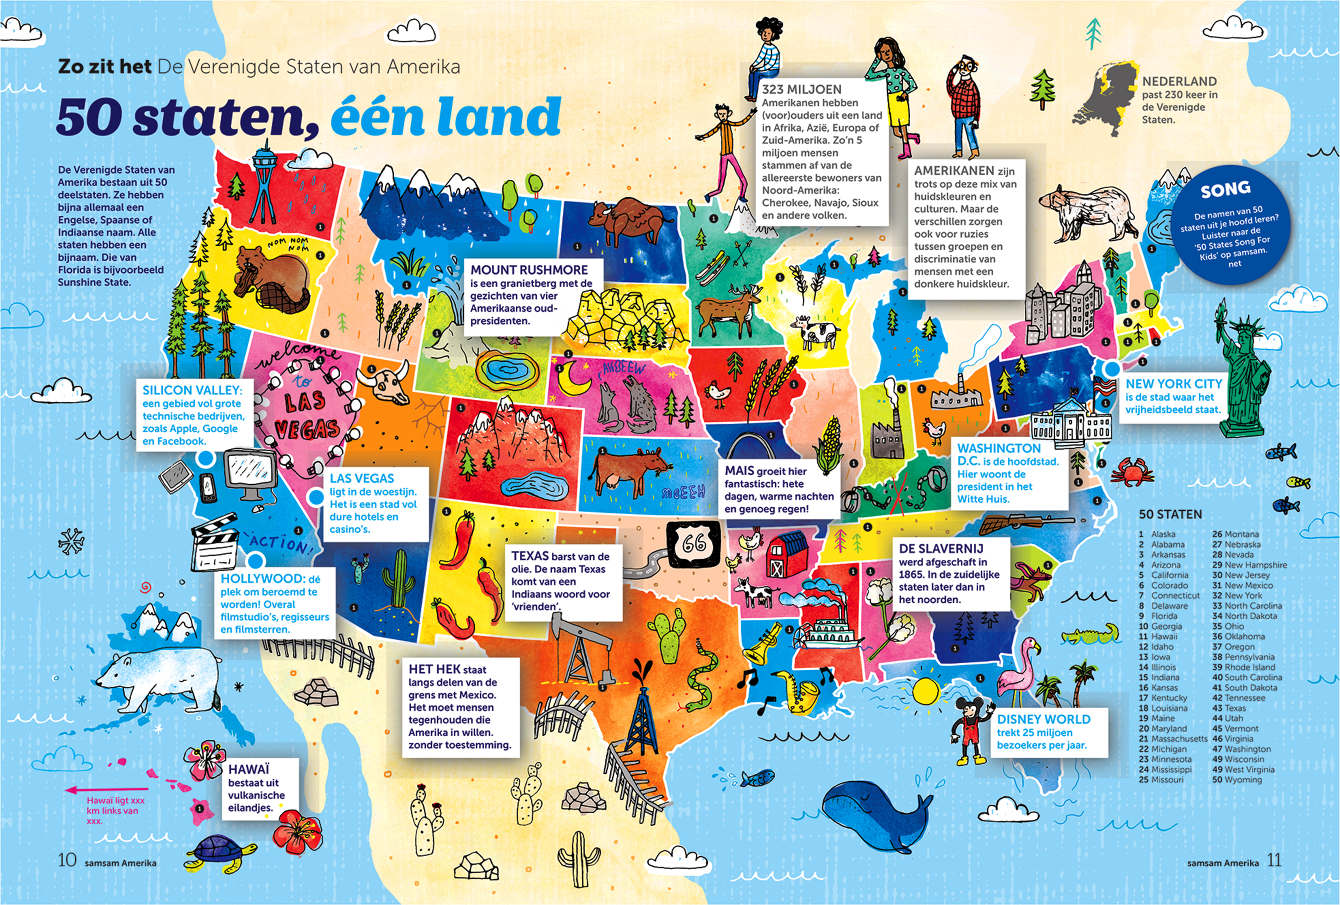 MAP OF USA | SAMSAM - www.maxgrunfeld.com Map Amerika on u.s. county, america shopping, america outline, america vector, america area, america people, america atlas, america attractions, incorporated territory, america art, america globe, united states territory, america national anthem, america logo, america acronym, america weather, america city, america continent, america activities, contiguous united states, indian reservation, america google earth, america text, america water bottle, america hemisphere,